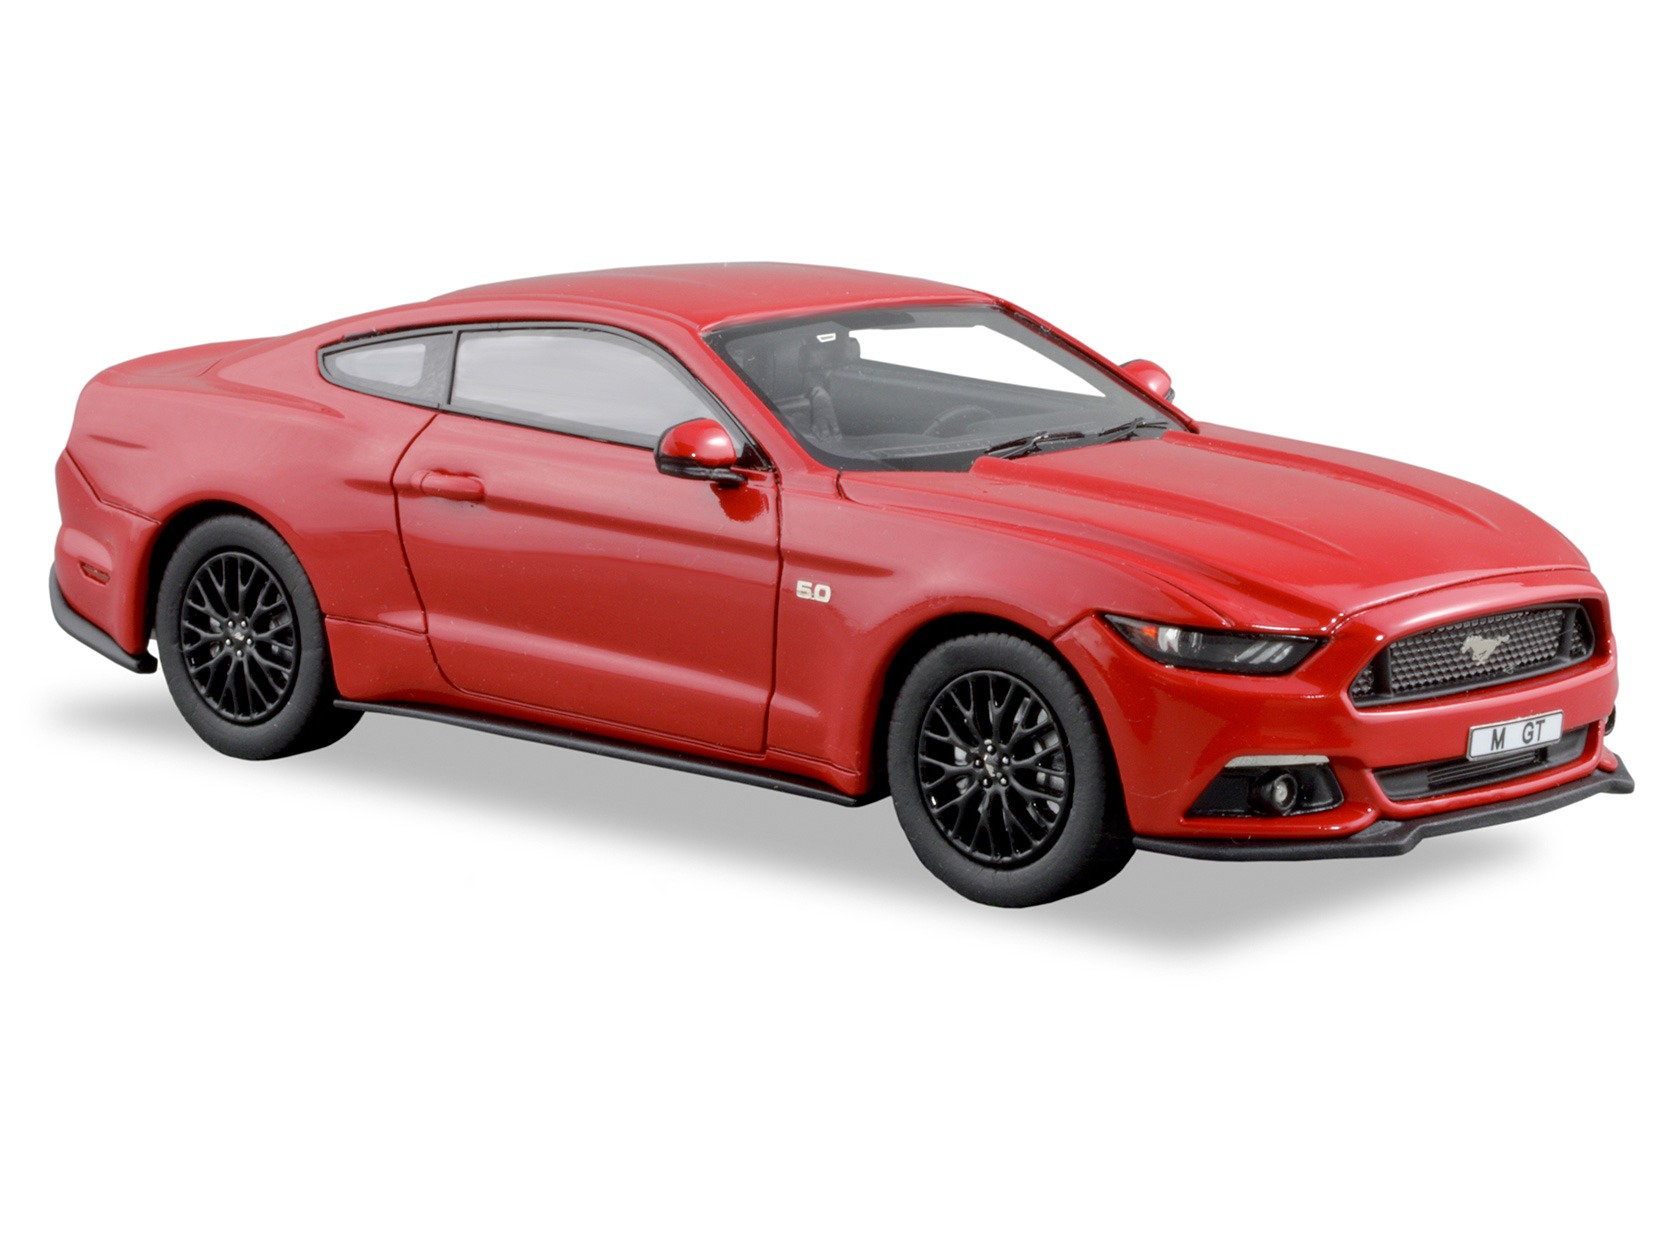 2016 Ford Mustang GT – Race Red